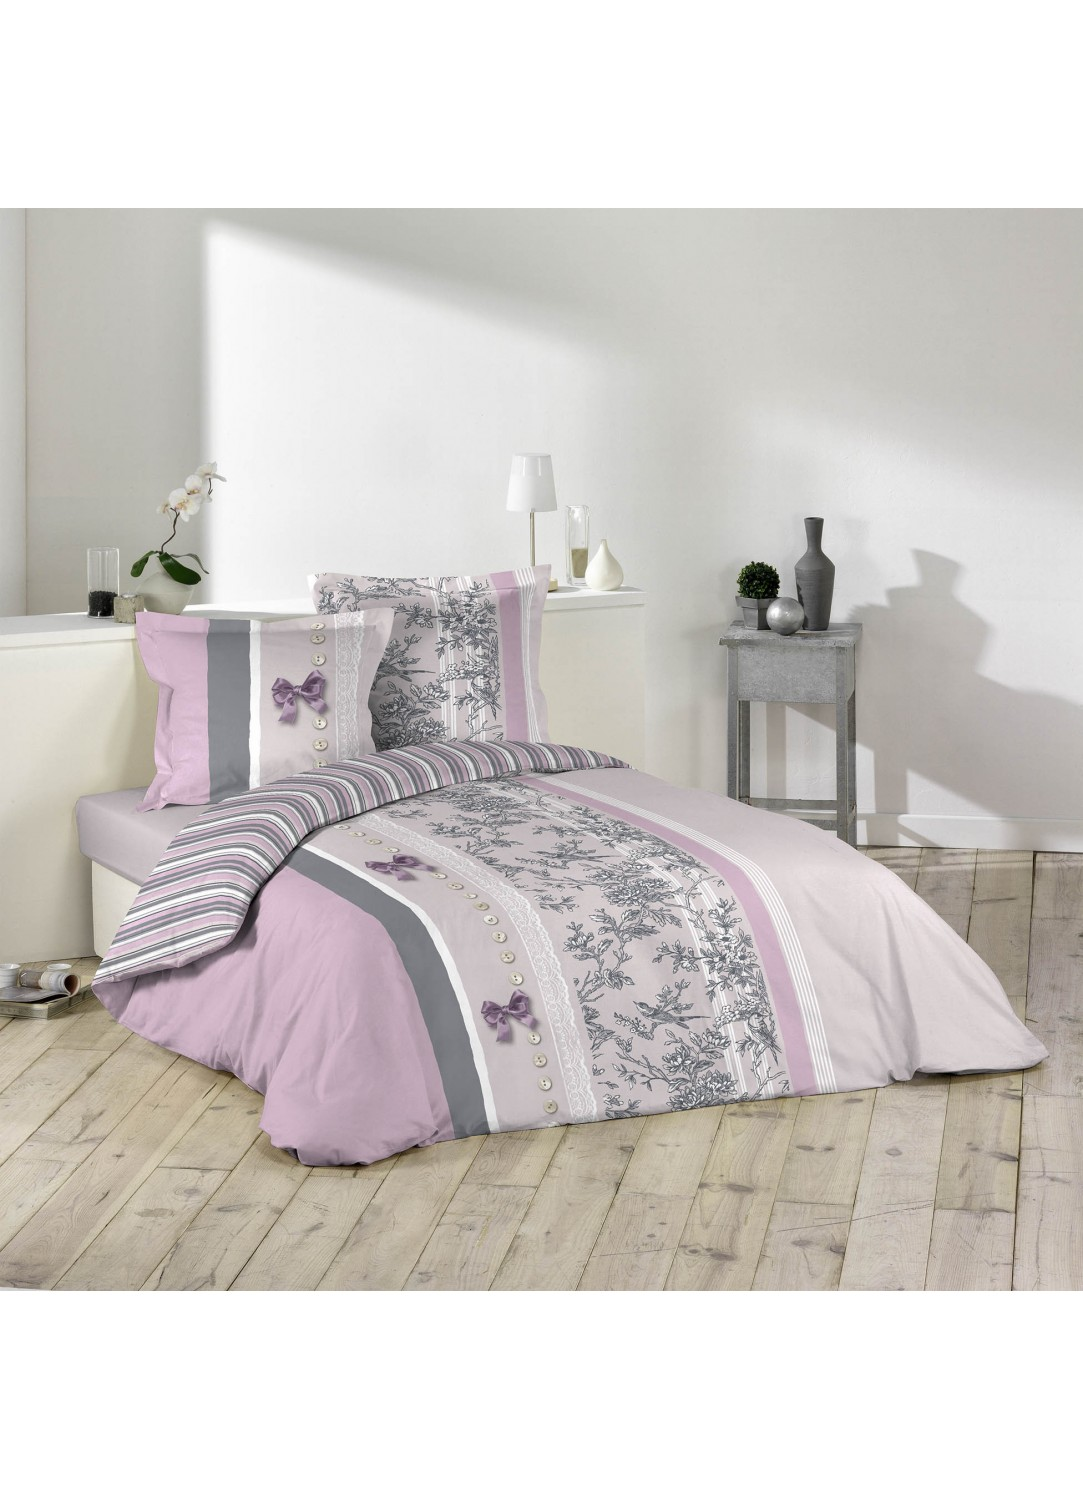 parure de lit 2 personnes charmance violet homemaison vente en ligne parures de lit. Black Bedroom Furniture Sets. Home Design Ideas